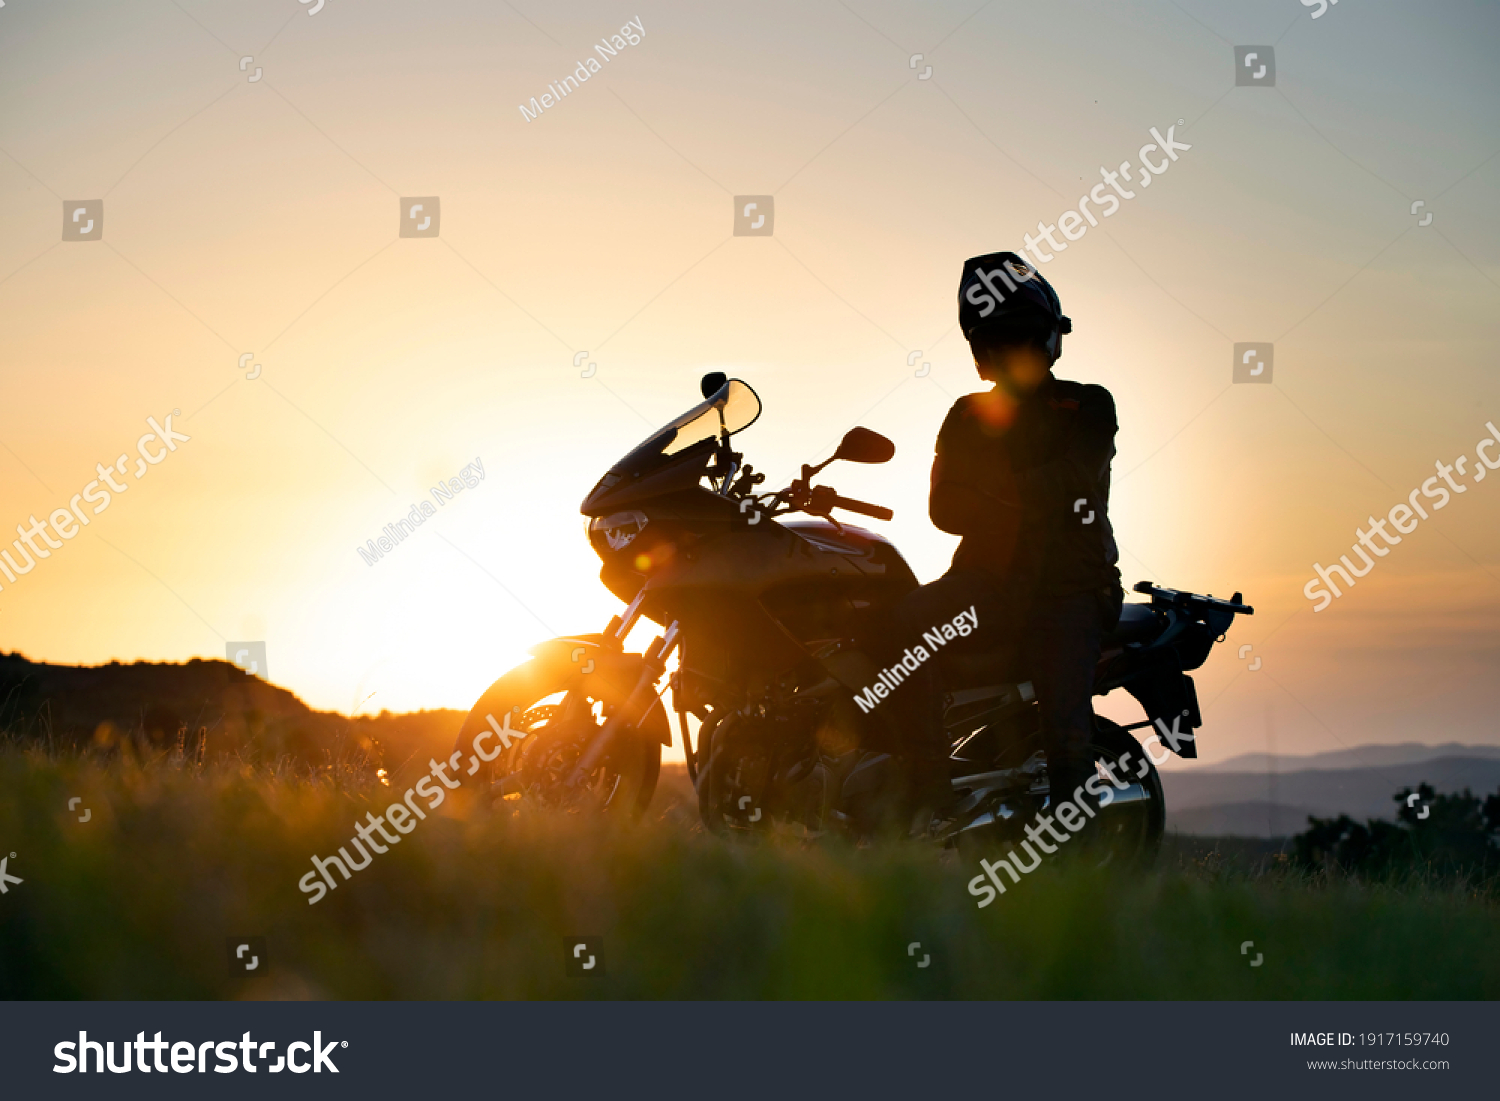 Young motorcycle rider on the road with sunset light background. #1917159740